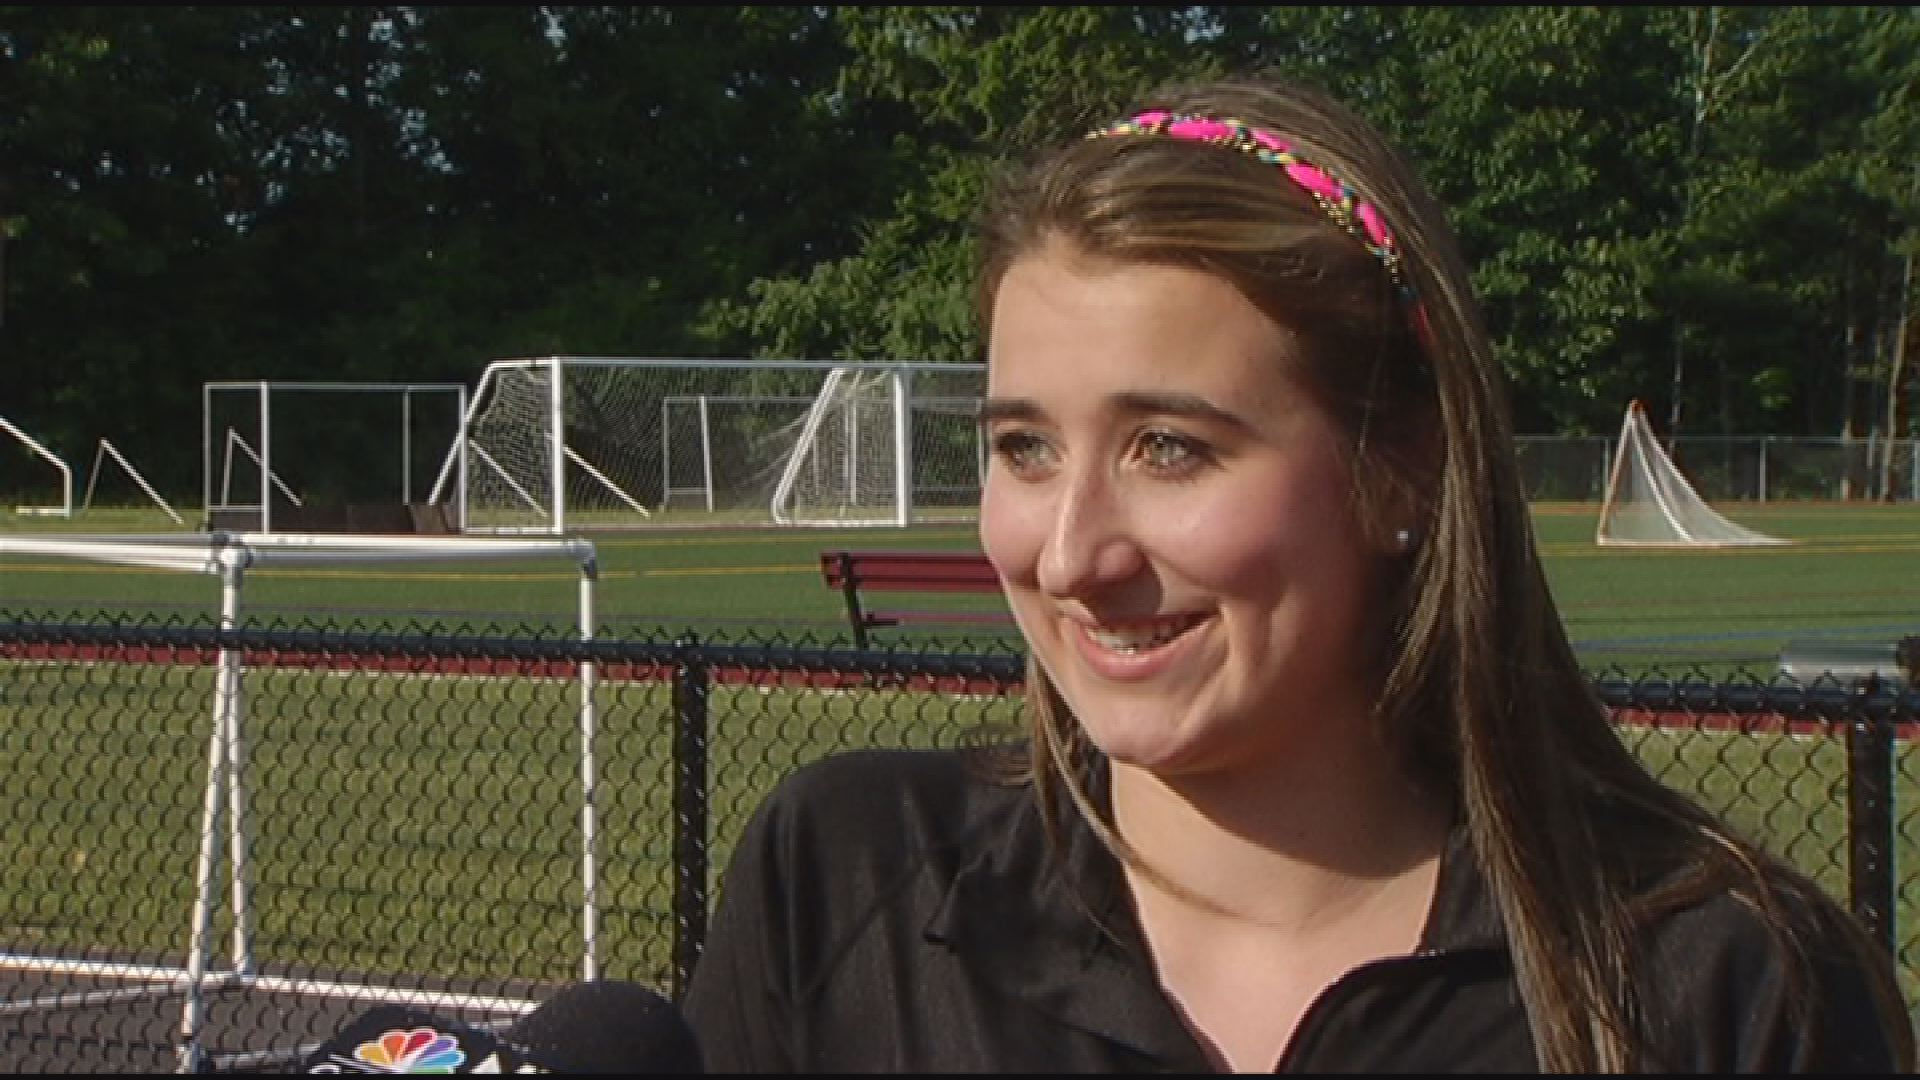 High school senior Cassia Shoaf is credited with helping to save the life of a man who collapsed on the school athletic fields.